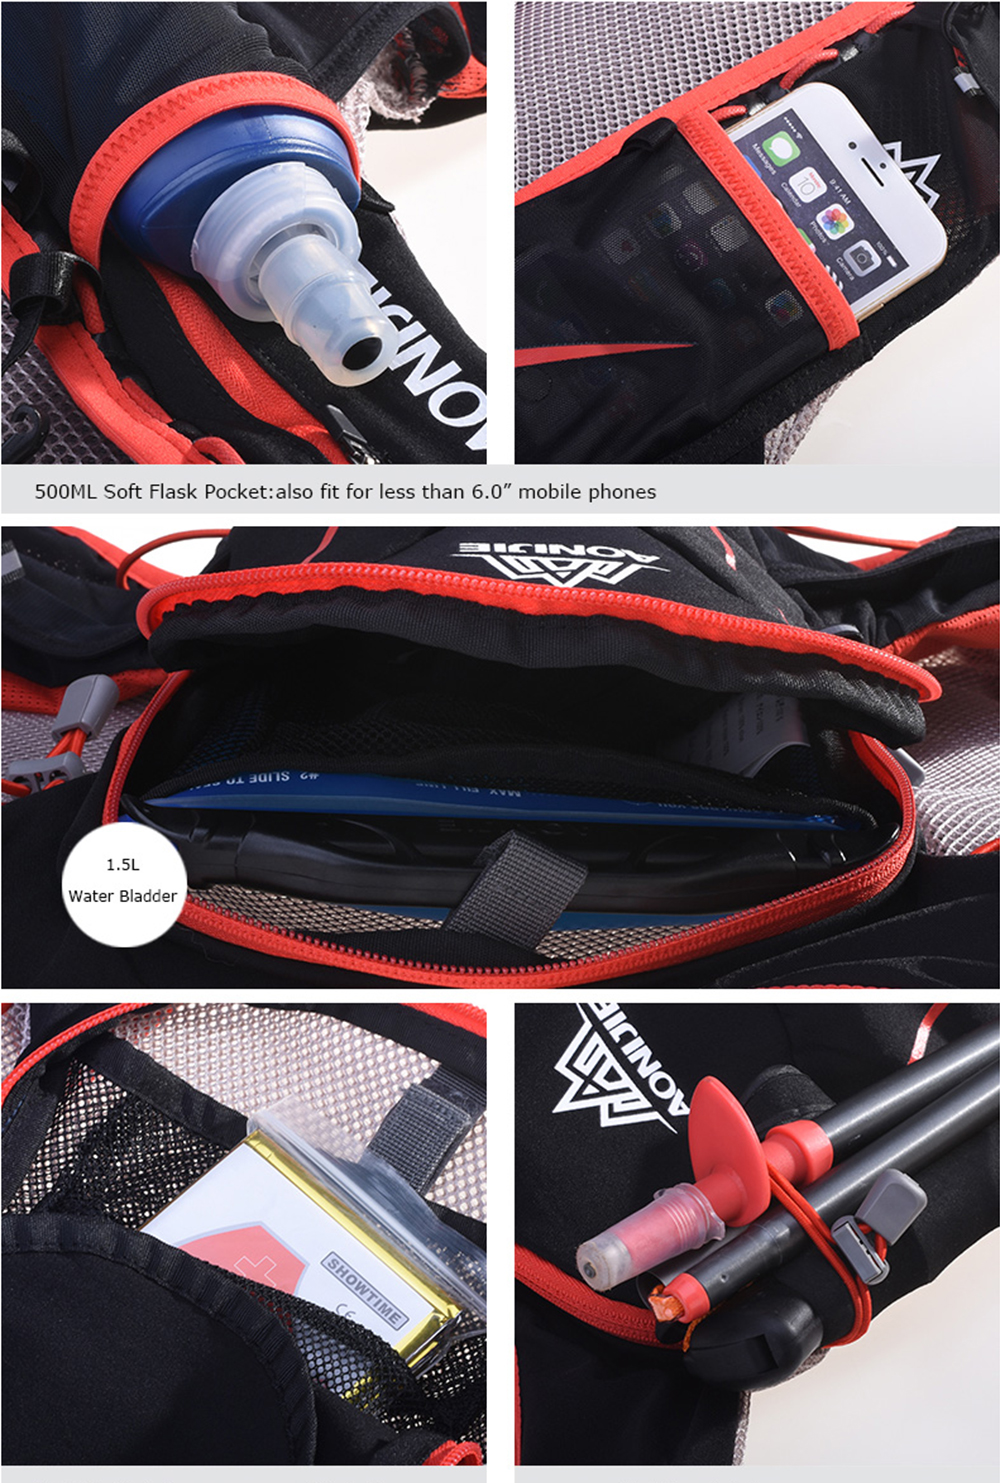 AONIJIE-E906-Hydration-Pack-Backpack-Rucksack-Bag_05